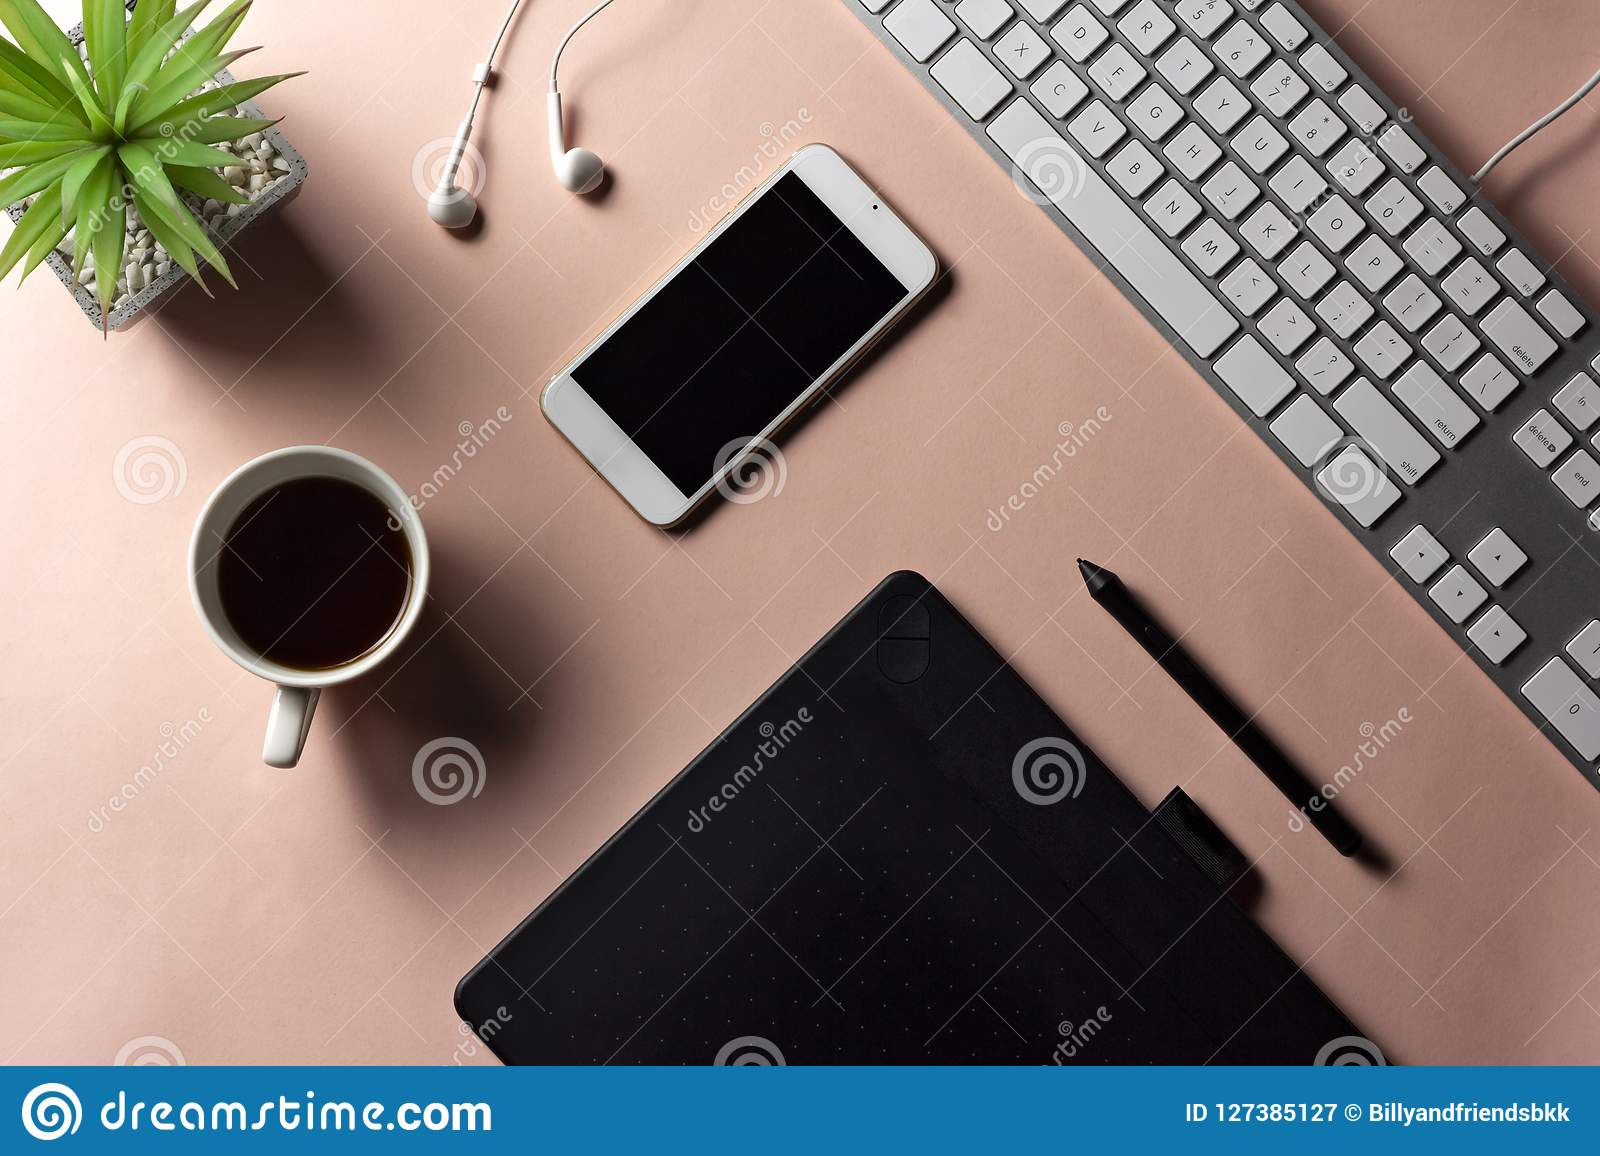 Minimal workspace for designer with electronic goods and espresso coffee on pastel pink background